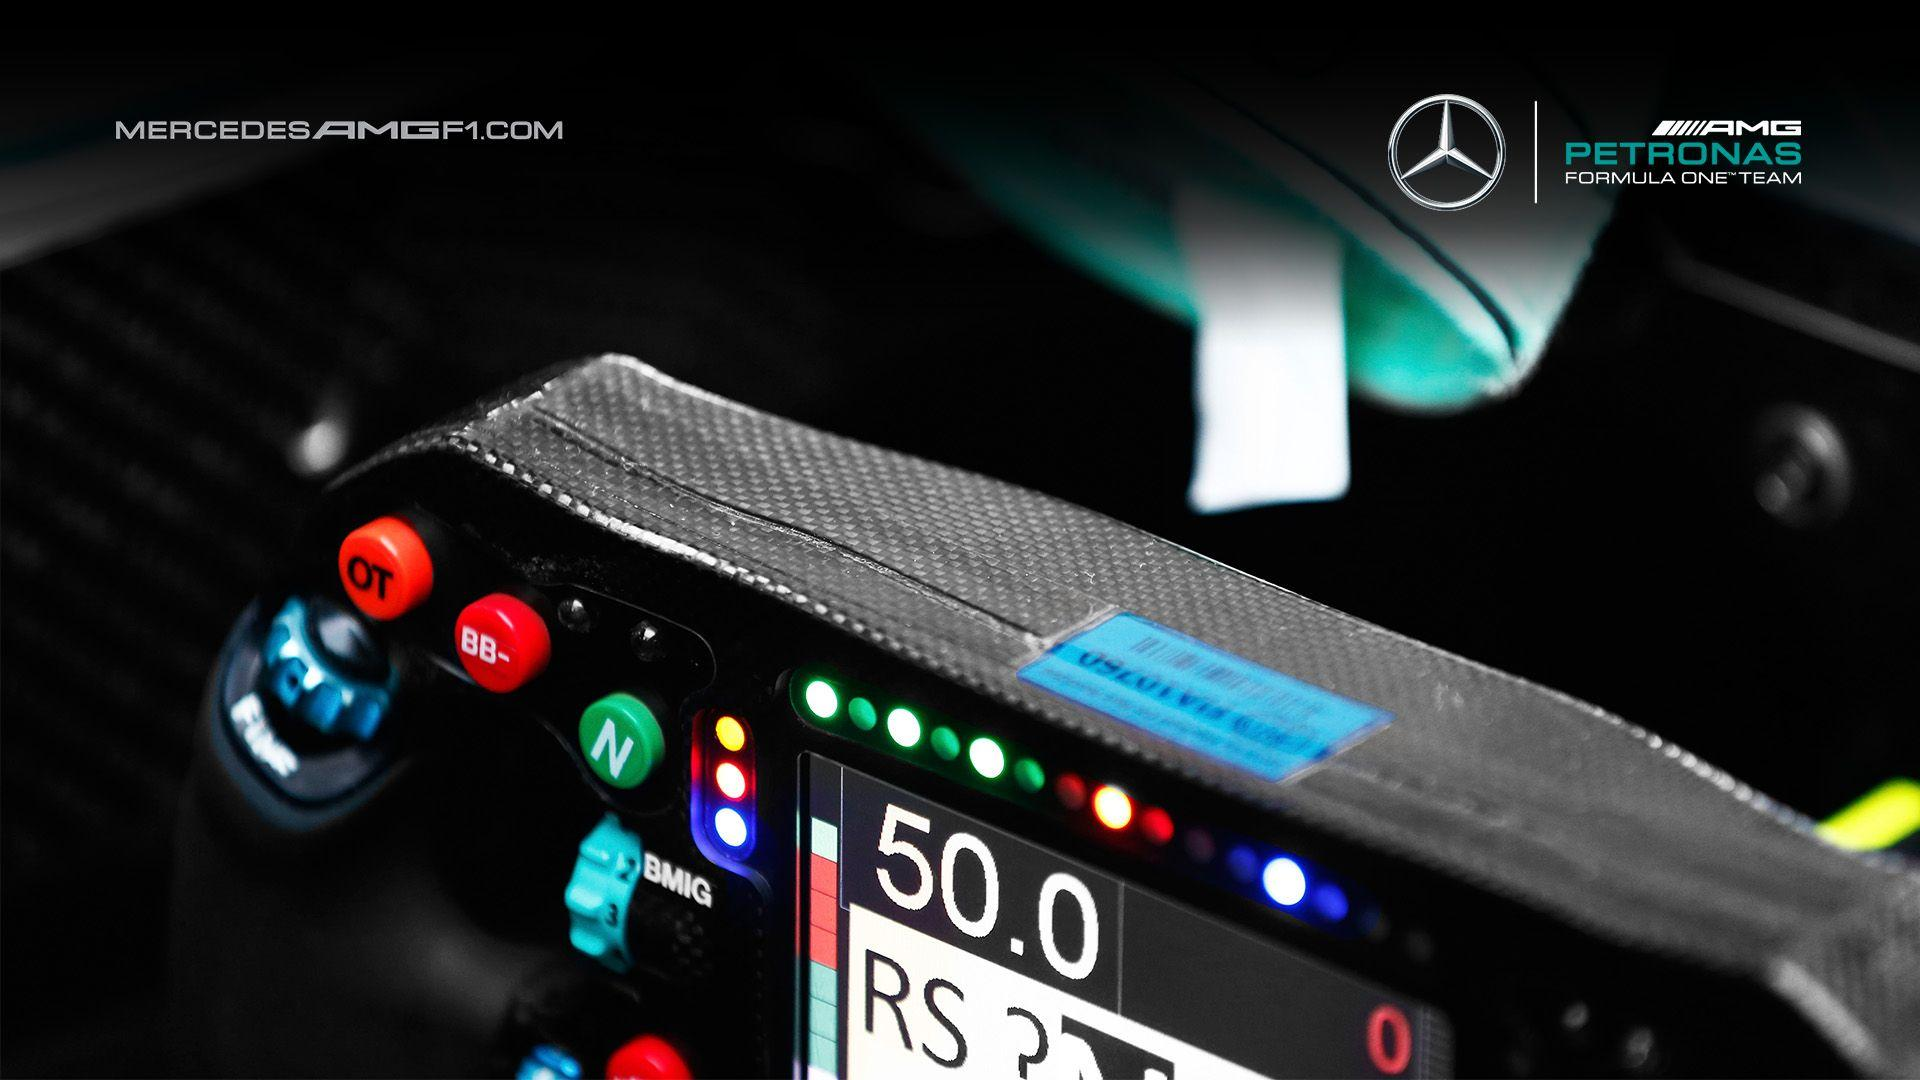 Mercedes Amg F1 Wallpaper, PC Mercedes Amg F1 Wallpapers Most